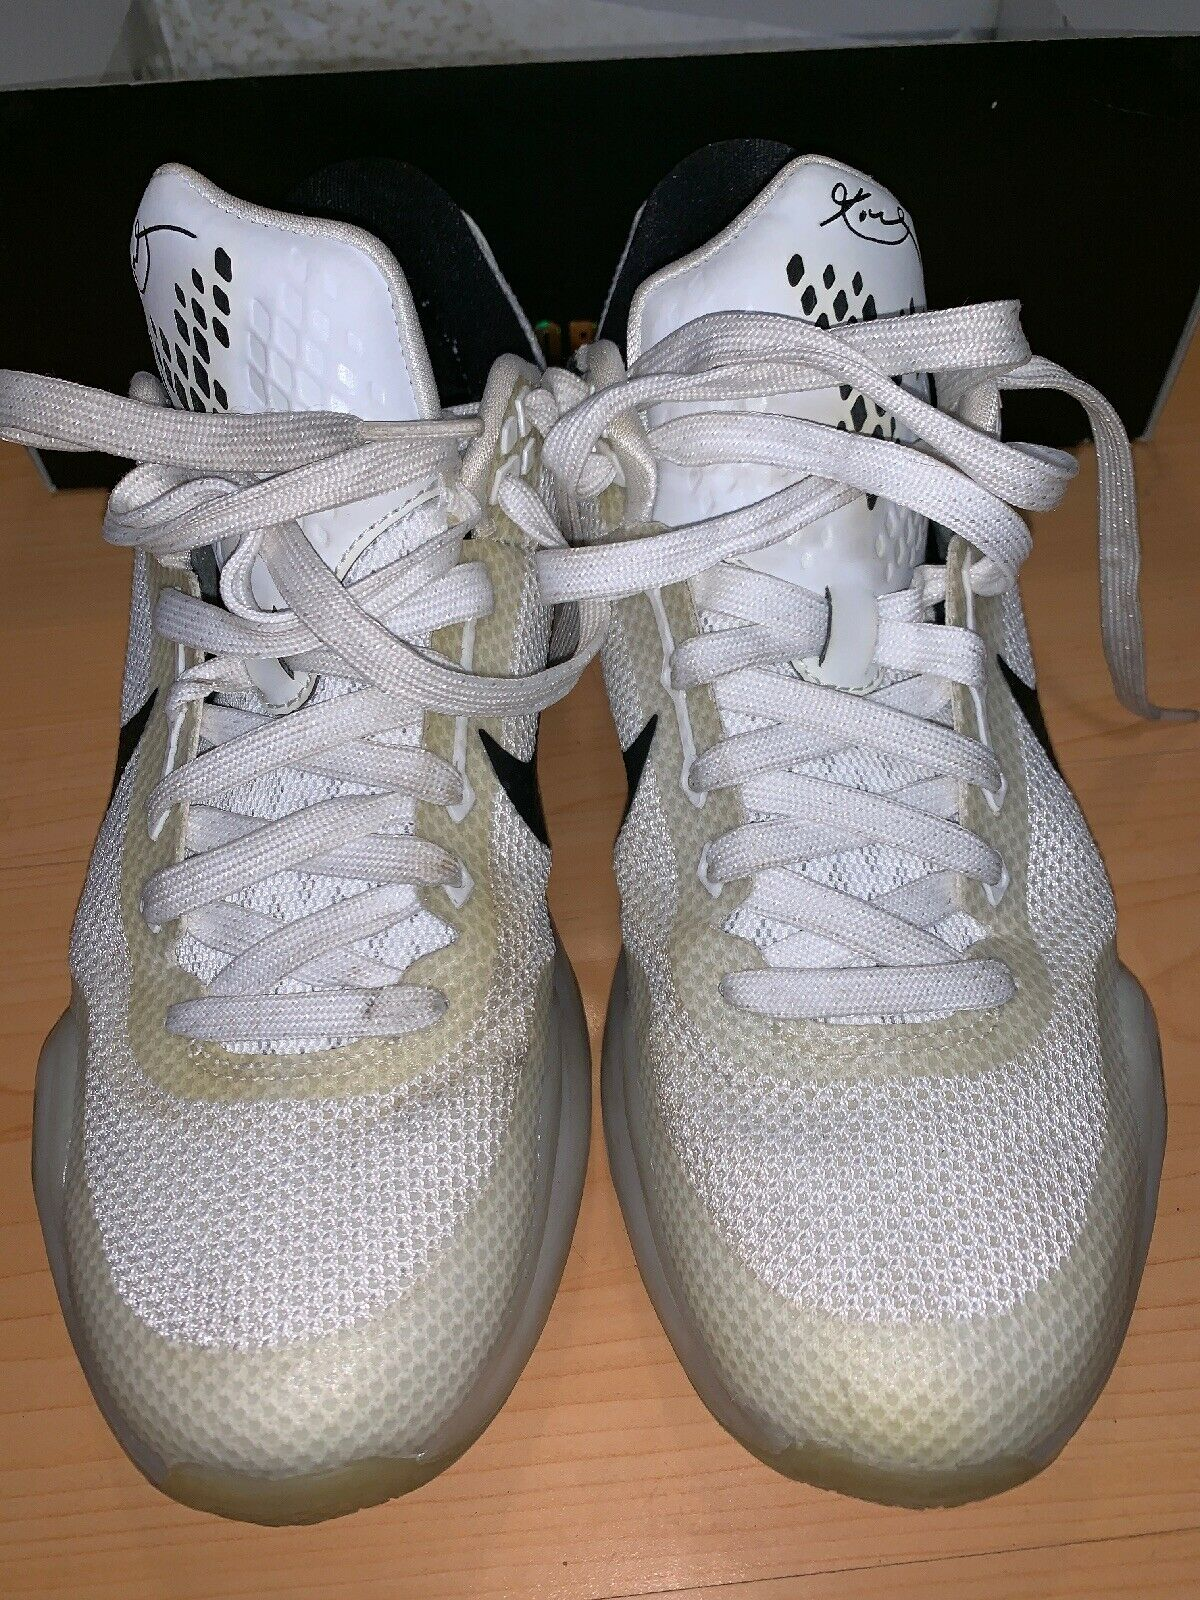 Nike Zoom Kobe X Size 8 In Great Condition With OG Box WHITE